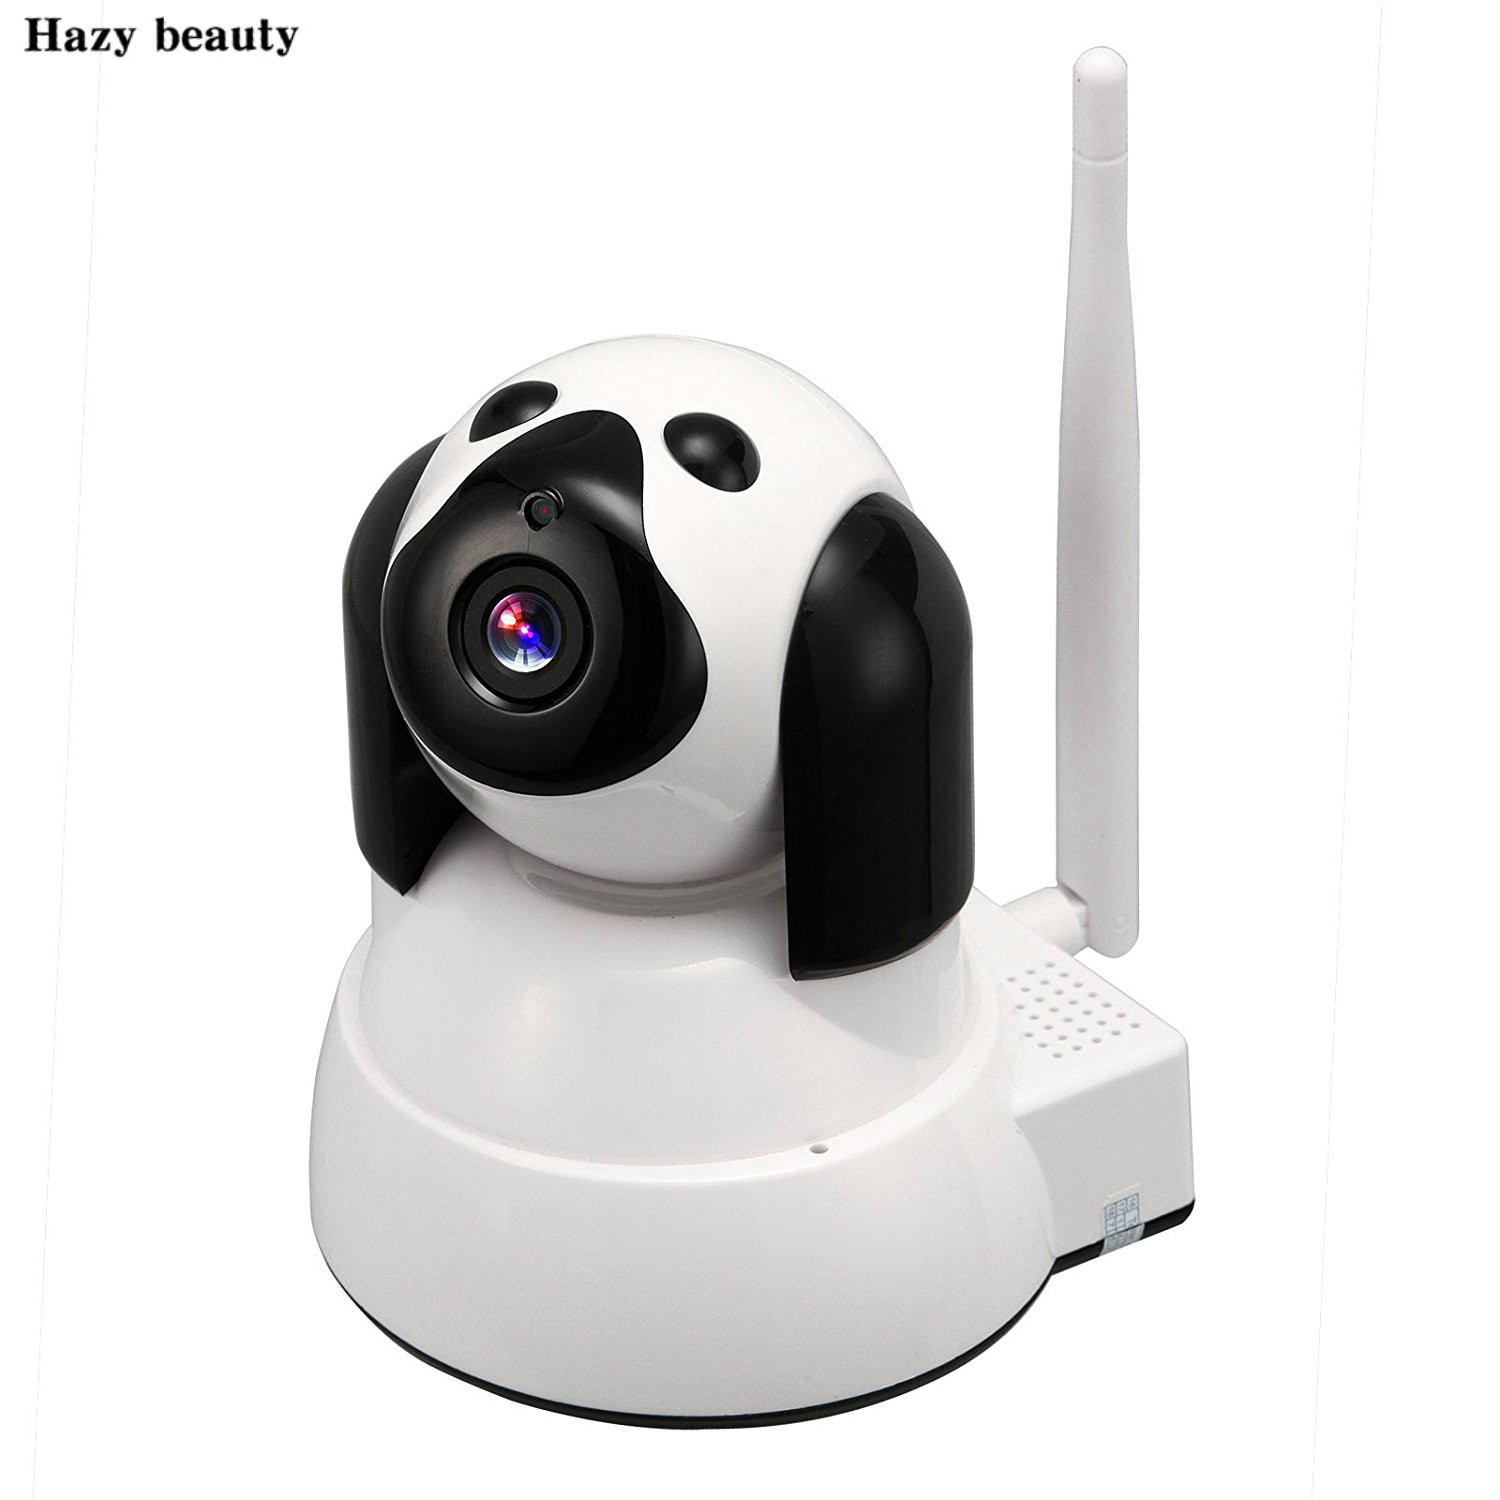 IP Camera Wi-Fi Wireless Smart Dog Security Wifi Camera Micro SD Network Rotatable Defender Home Telecam CCTV Android IOS PC FH4 детская игрушка new wifi ios